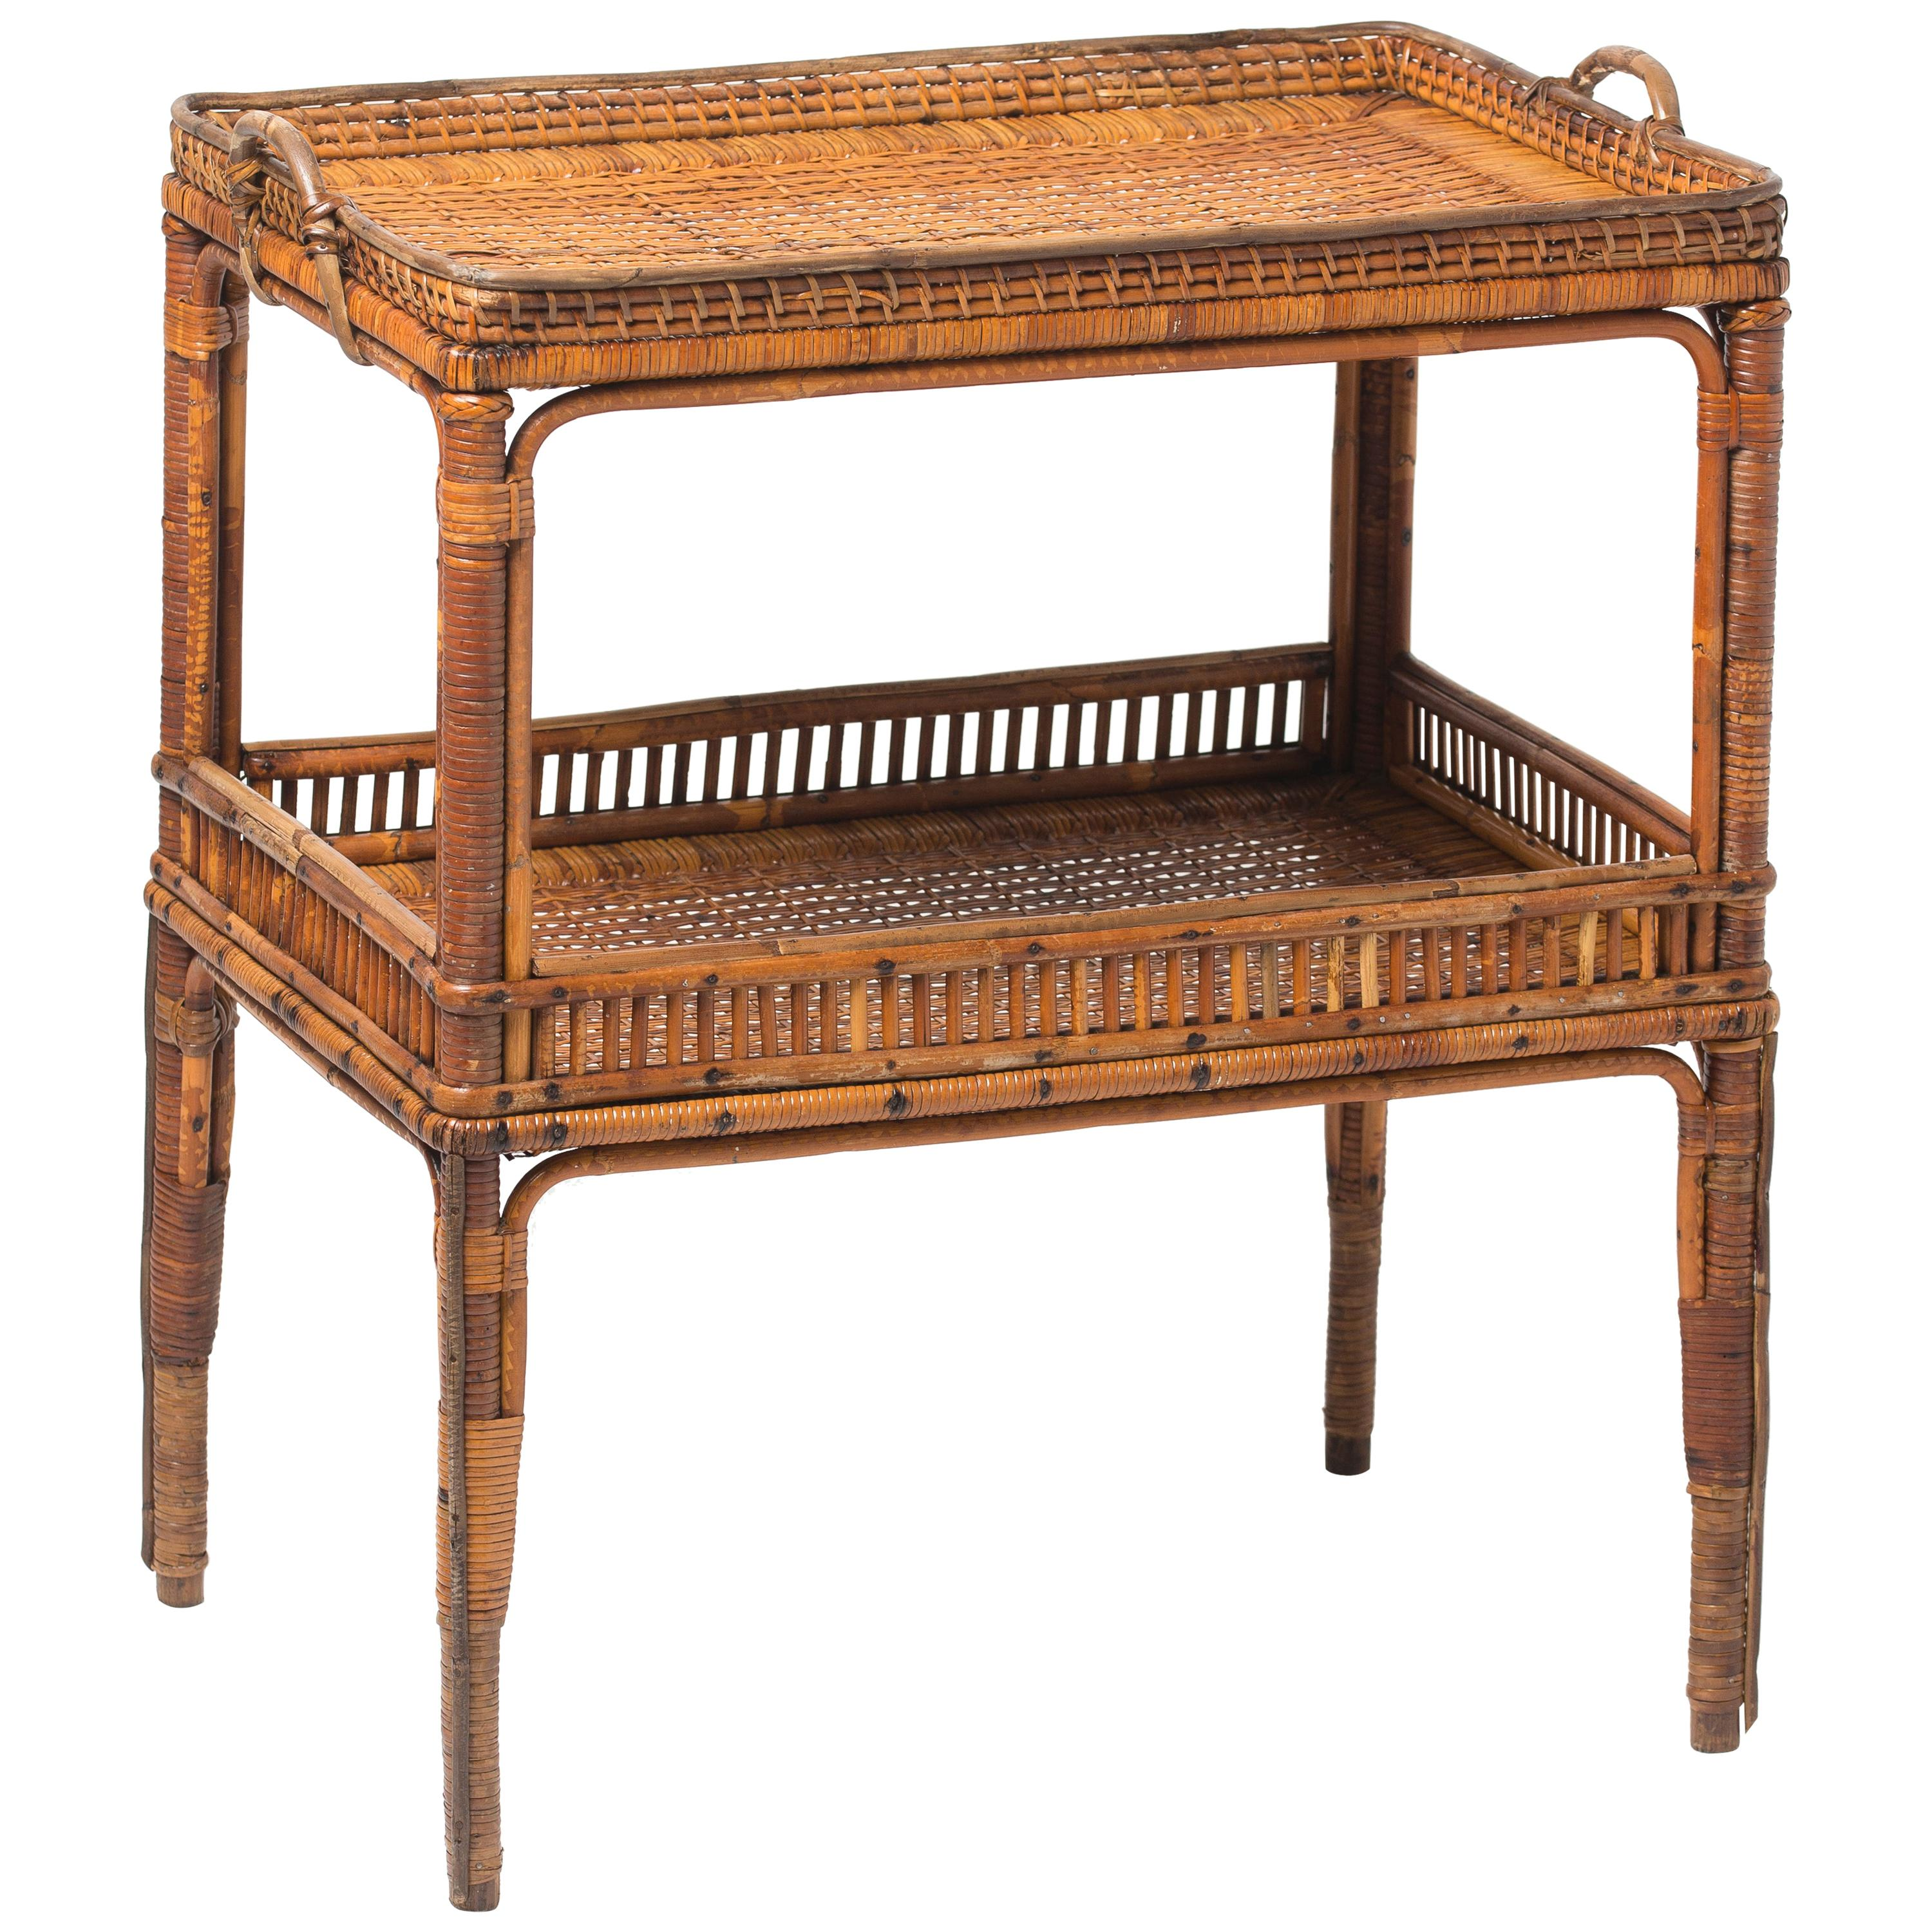 Serving Table in Woven Rattan, France, circa 1900